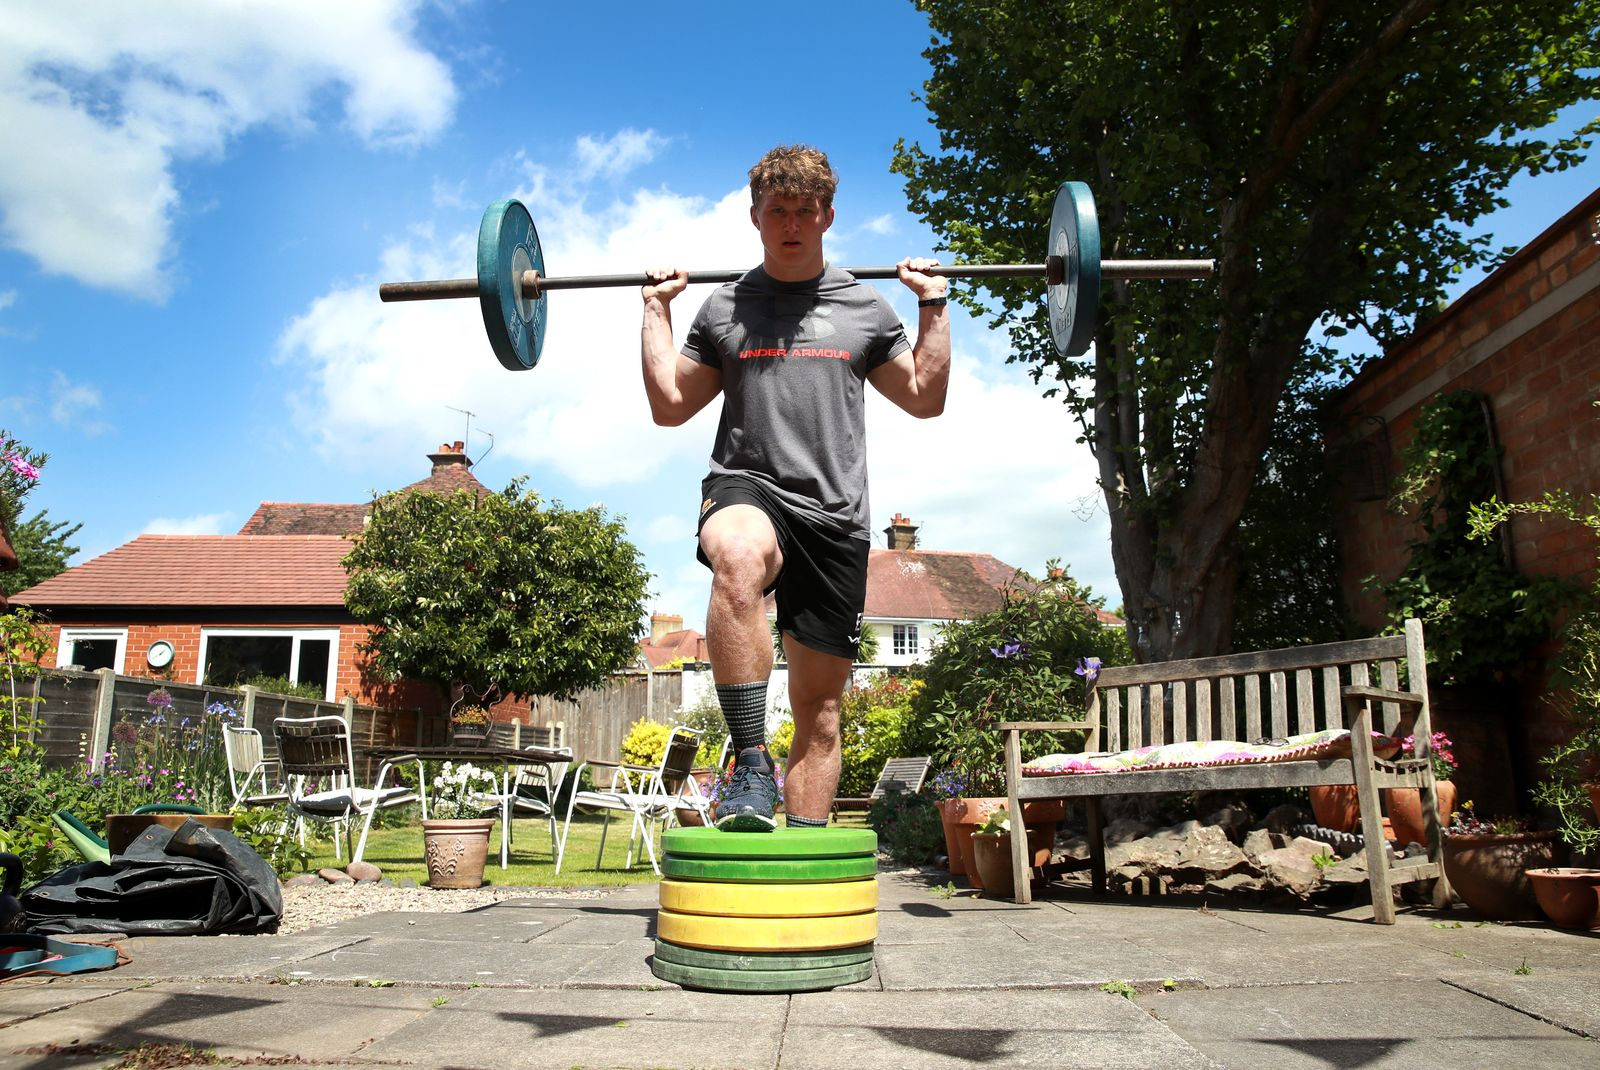 ***BESTPIX*** Worcester Warriors Rugby Player Ted Hill Training During The Coronavirus Pandemic